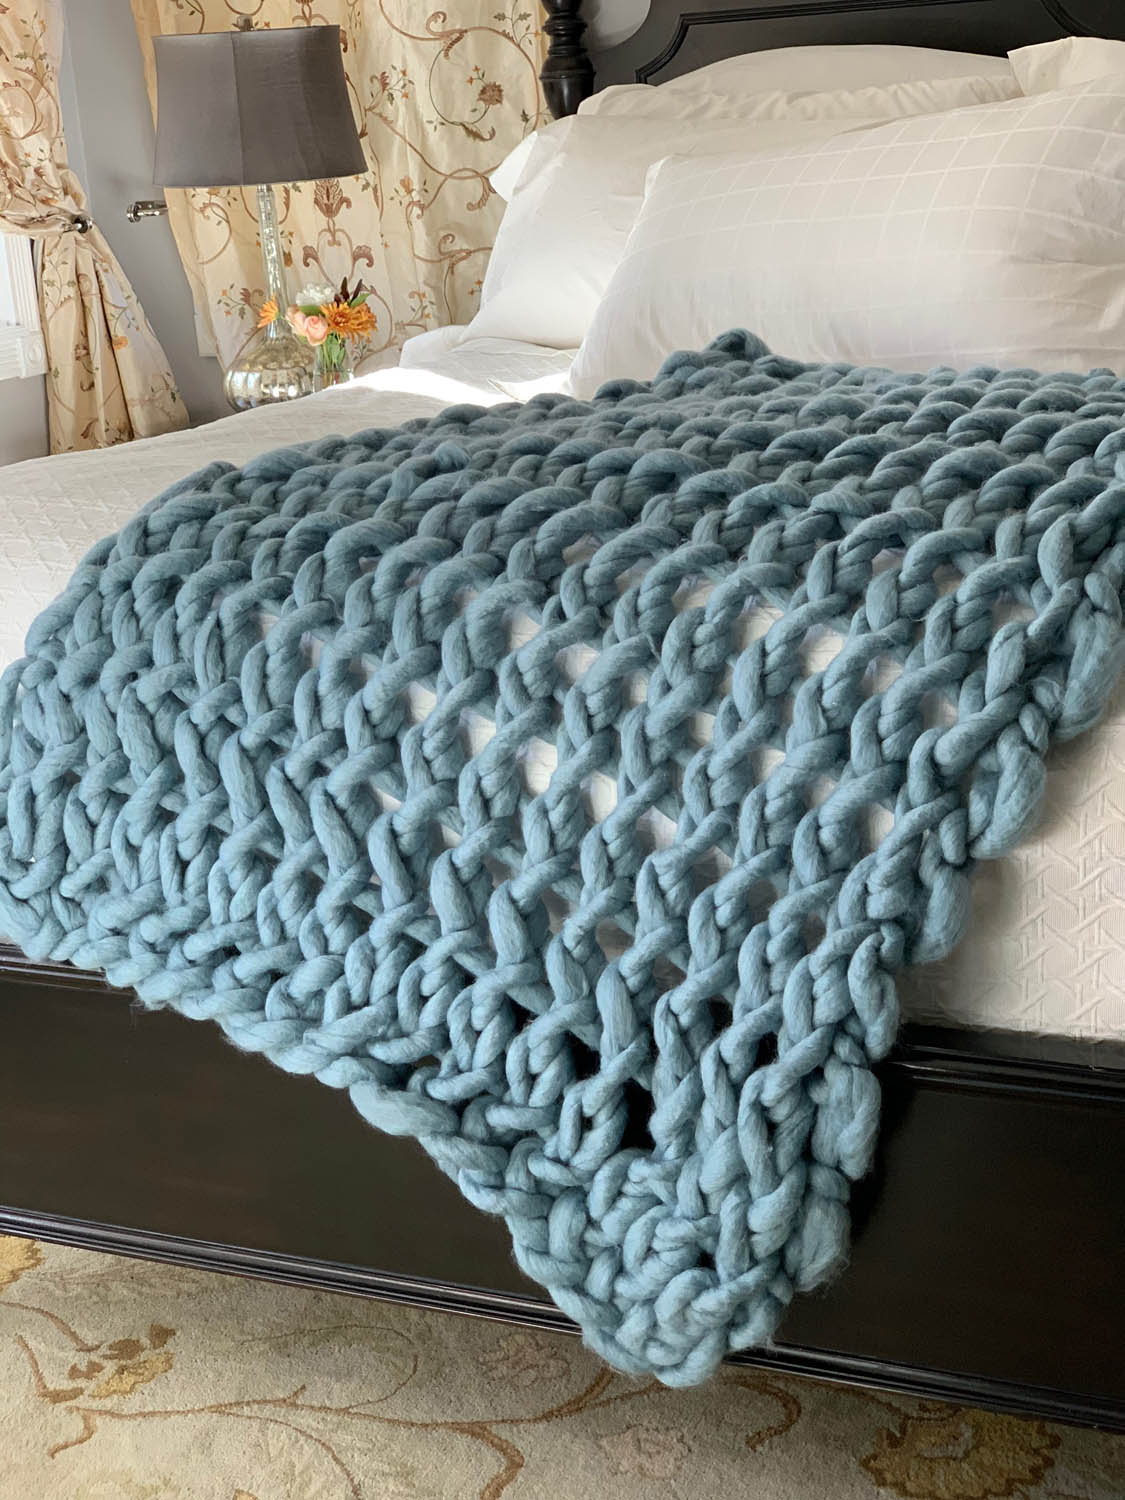 Finished DIY 1-hour arm-knitted throw in Free Spirit yarn by Loops & Threads in Dusty Blue.